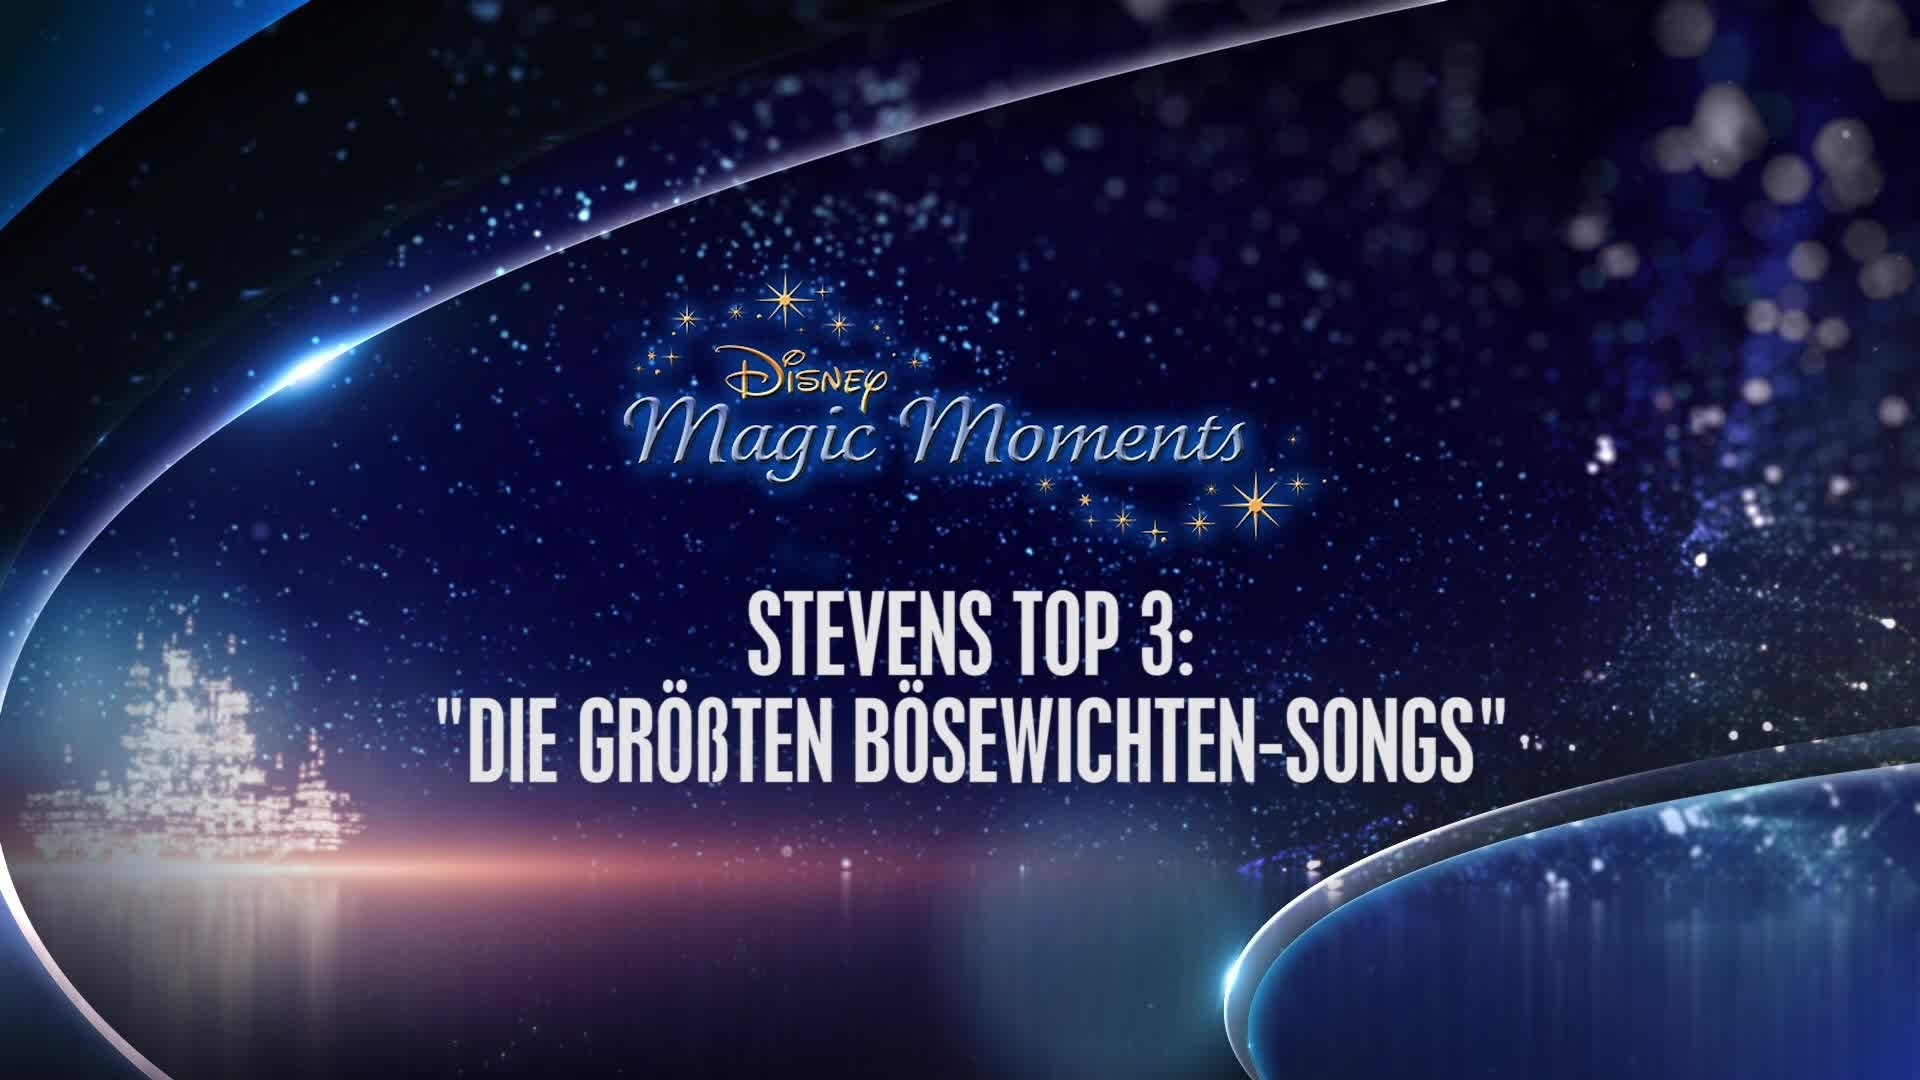 Magic Moments - Stevens Top 3 Bösewichten-Songs